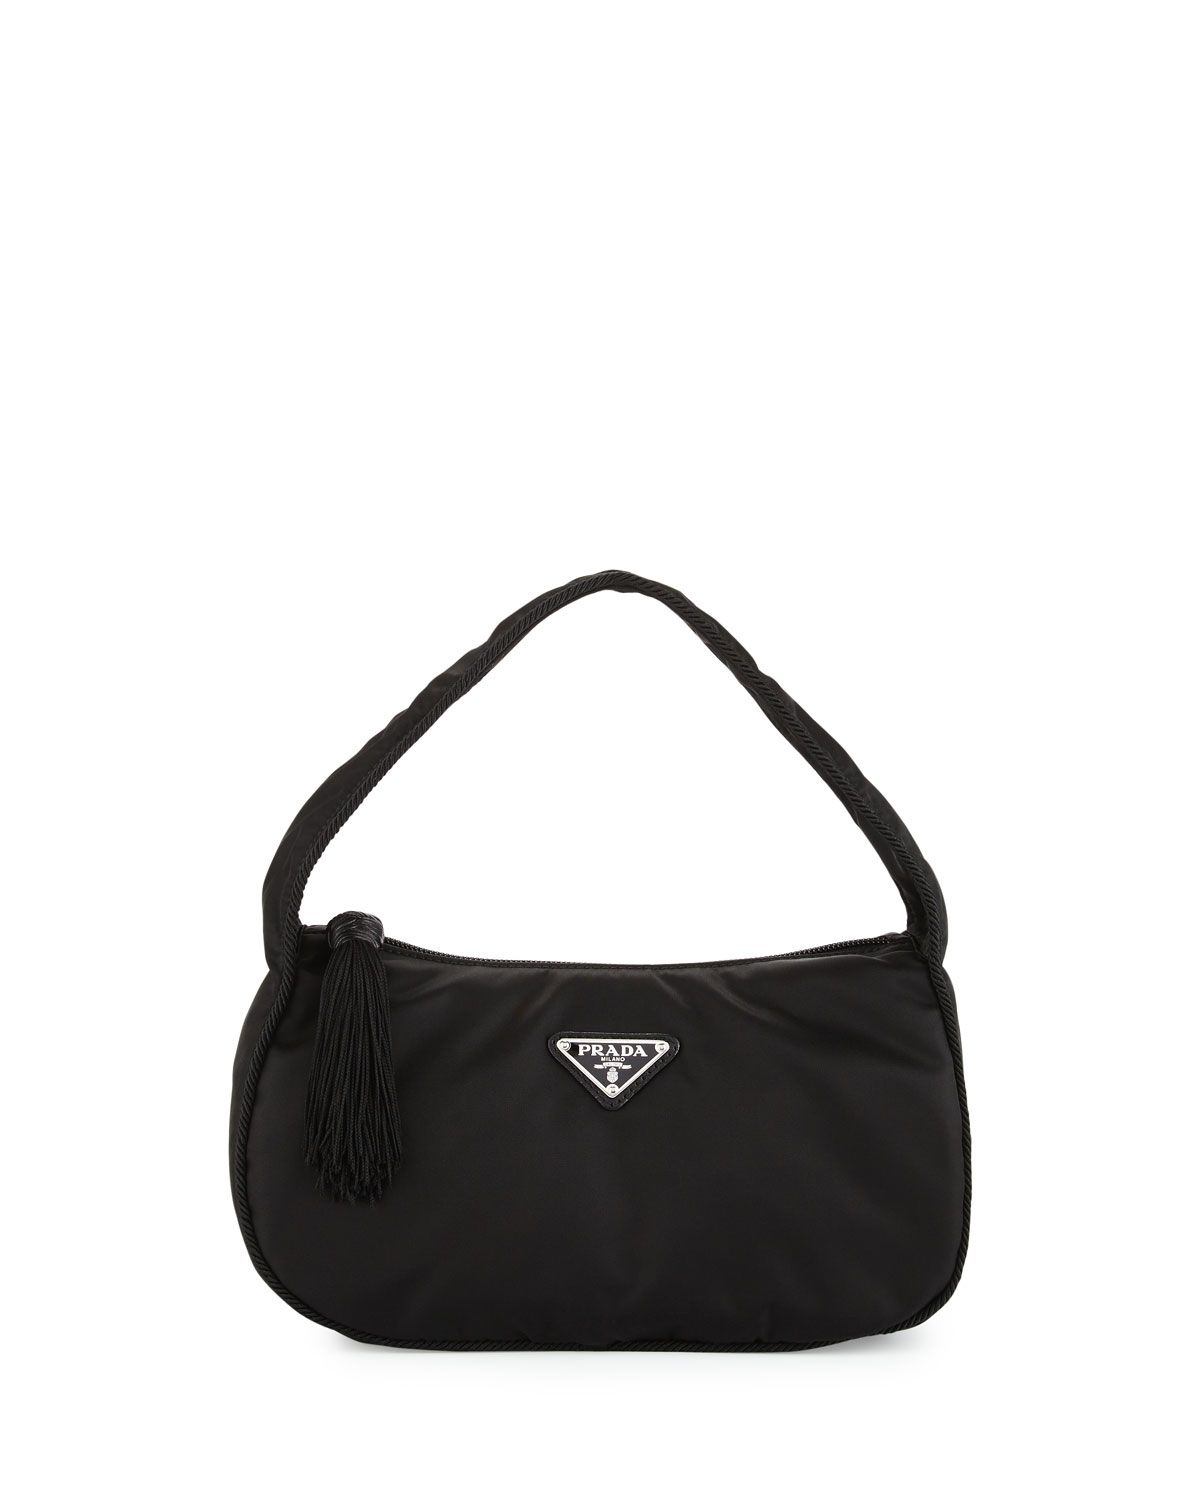 24a5997608 Prada Nylon Small Zip-Top Hobo Bag